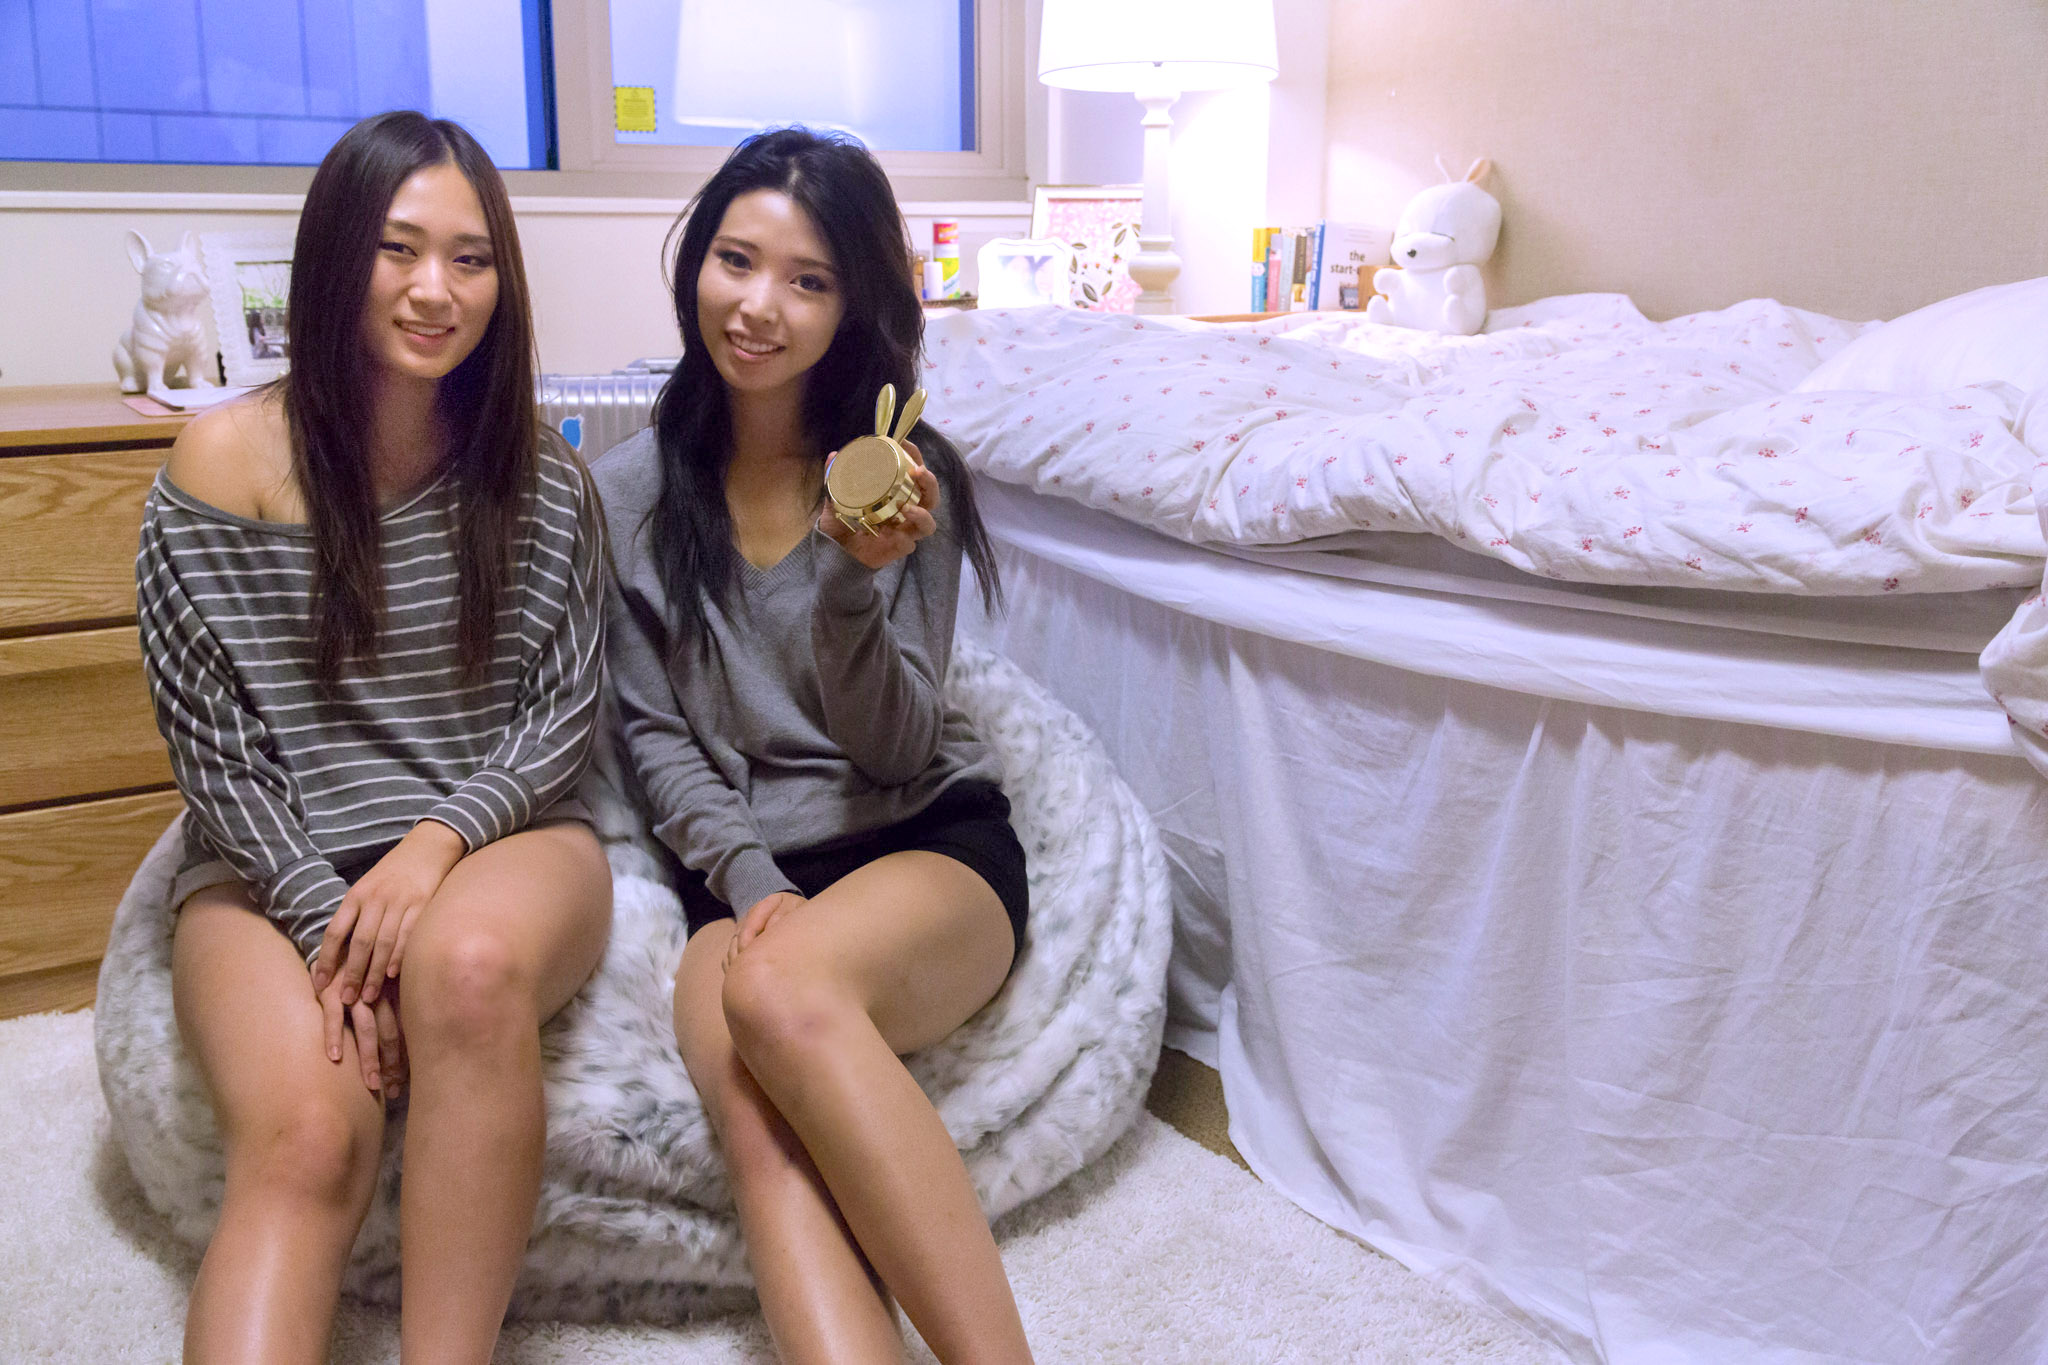 ally gong dorm decoration college ucla dorm room decoration ideas bean bag cute girl asian fashion lifestyle blogger pottery barn teen